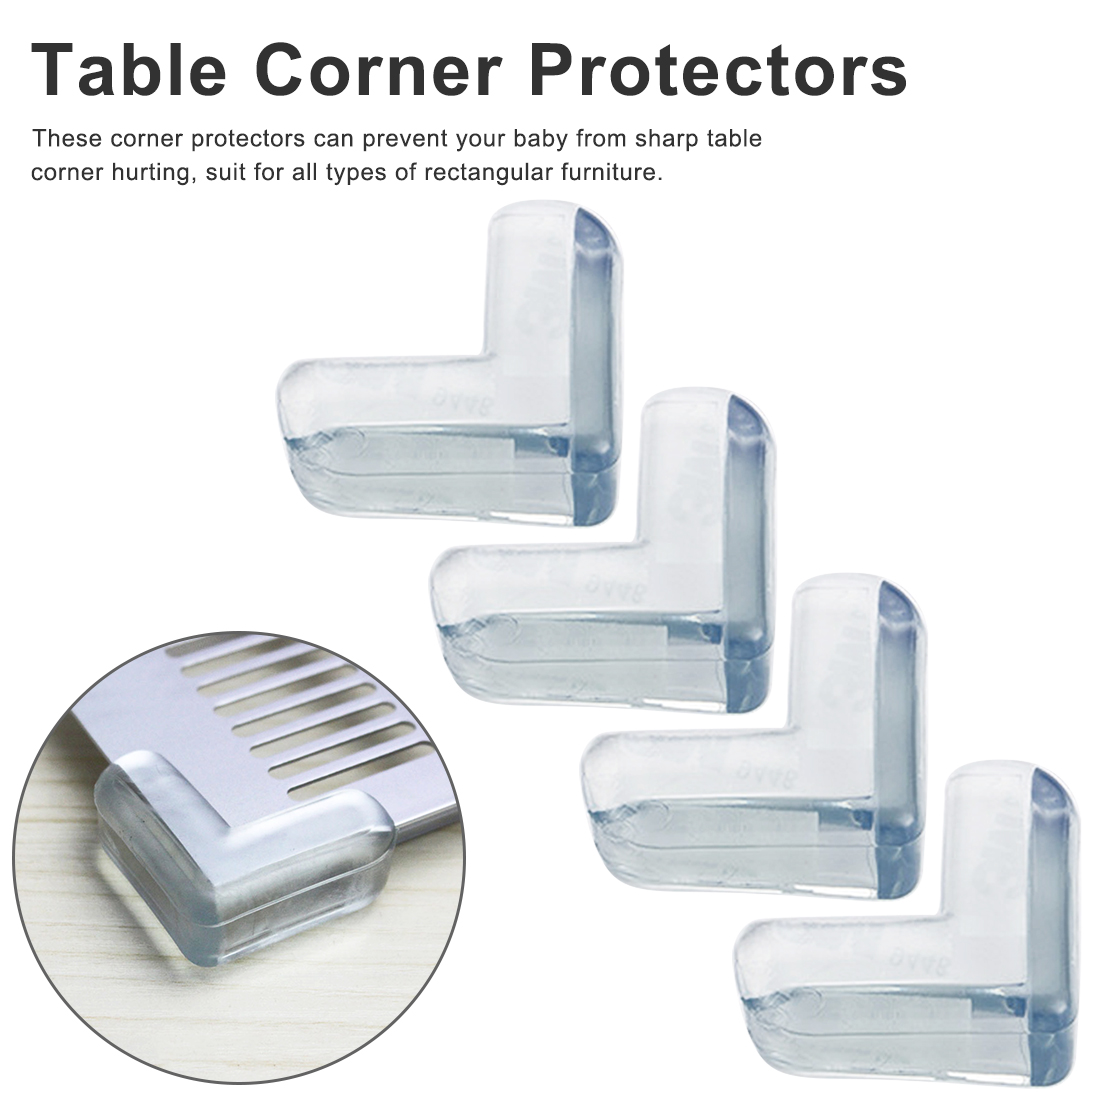 4Pcs Child Baby Silicone Safety Protector Table Corner Edge Protection Cover Children Anticollision Edge Child Corner Guards4Pcs Child Baby Silicone Safety Protector Table Corner Edge Protection Cover Children Anticollision Edge Child Corner Guards